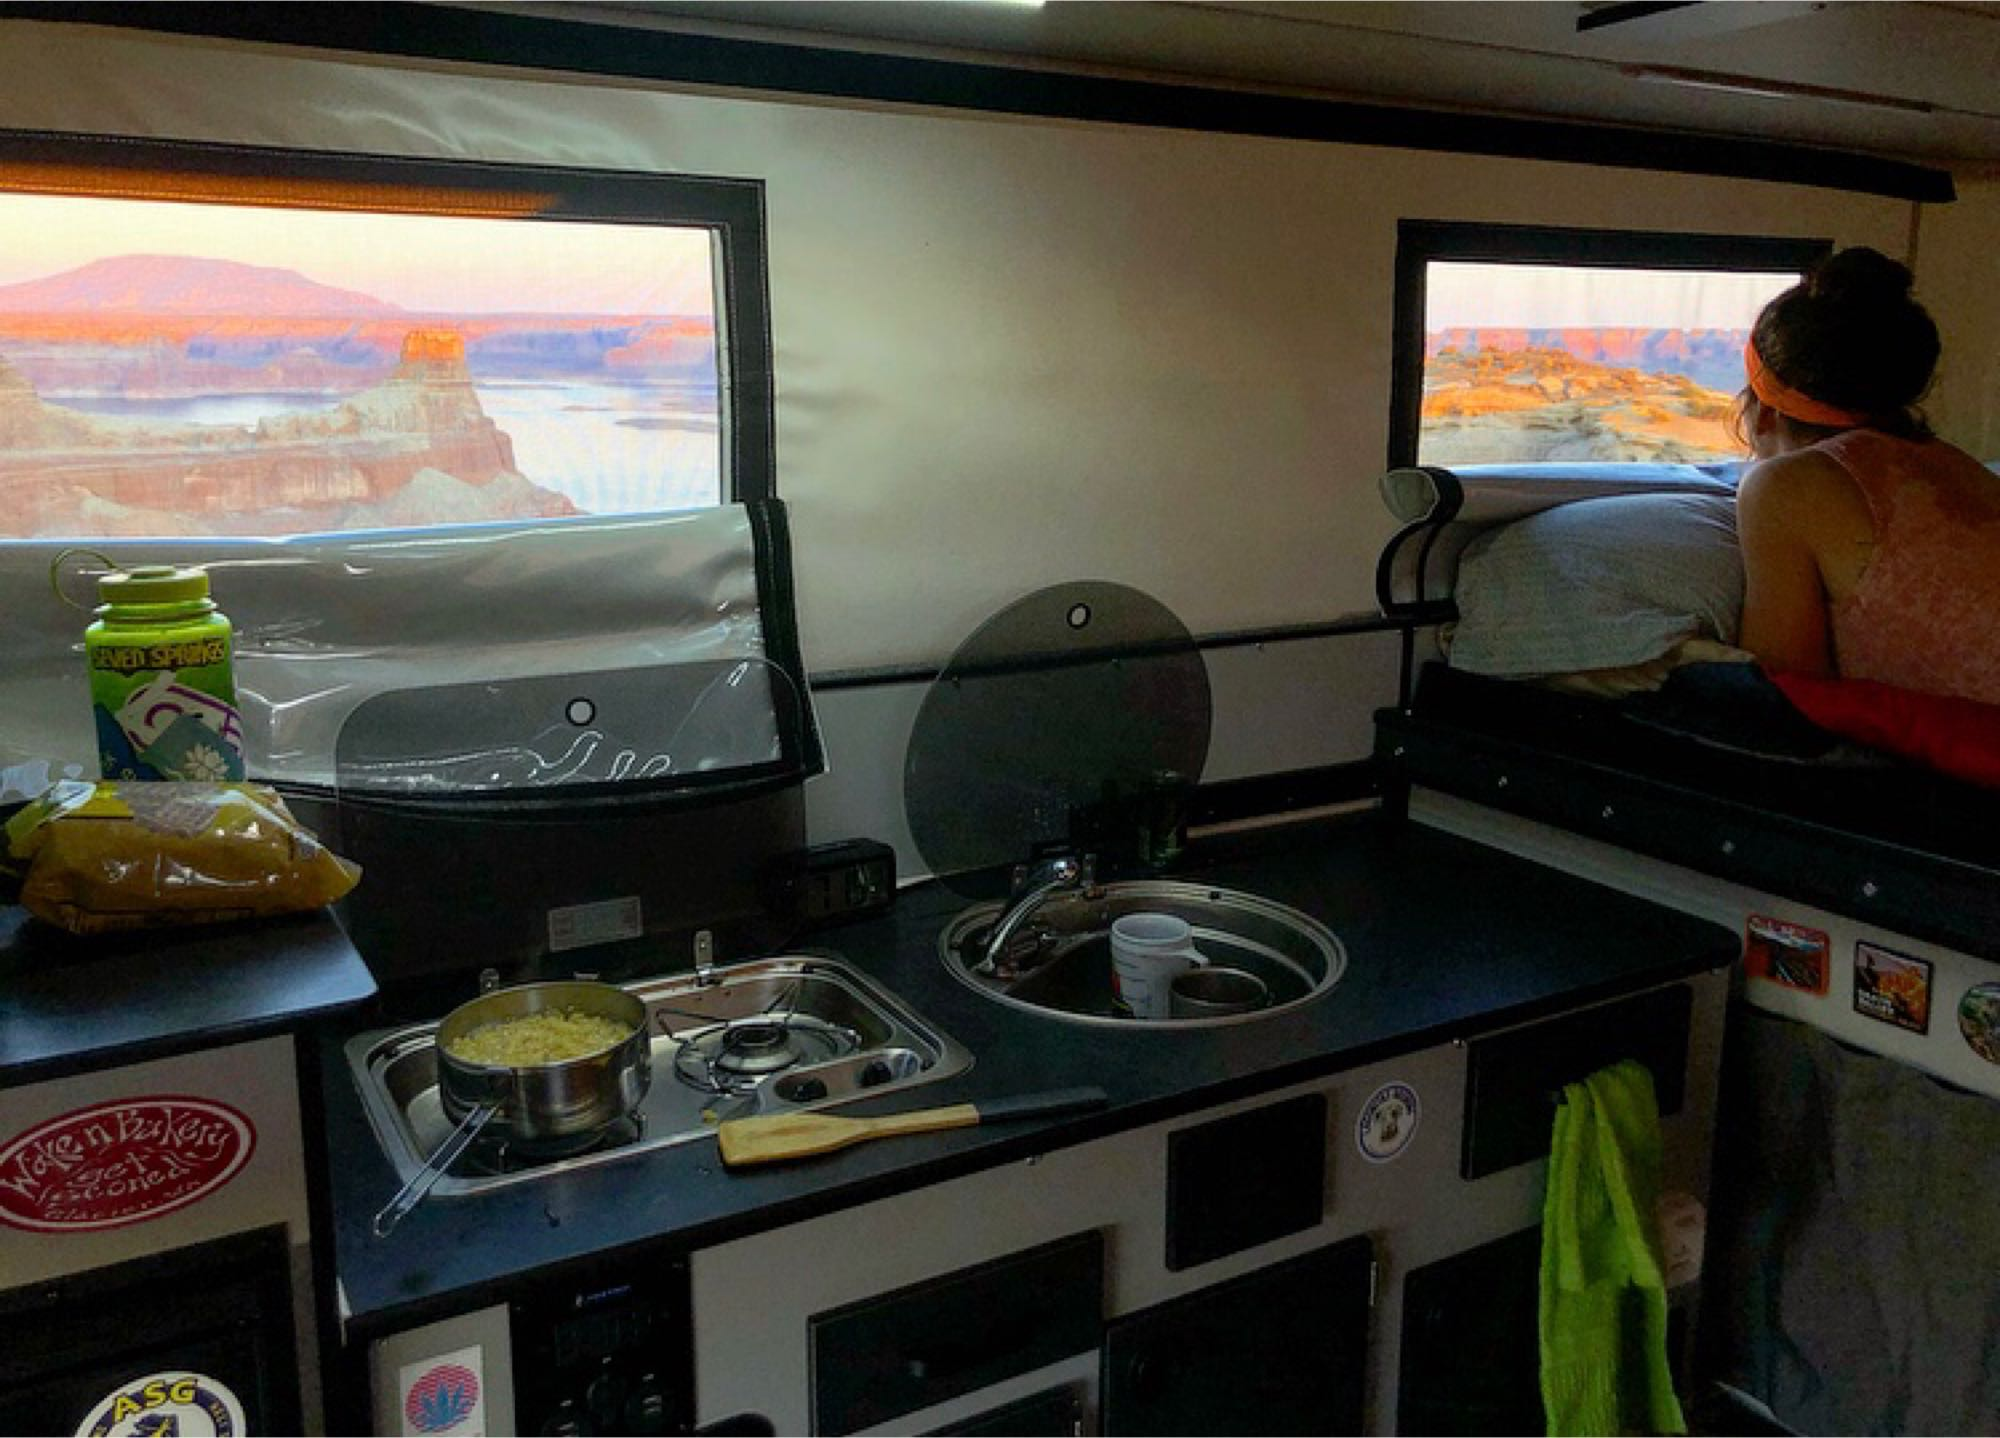 a lot of big windows so there's always a view, even when in the kitchen. this is off a remote dirt road on lake Powell. Four Wheel Campers Hawk 2019